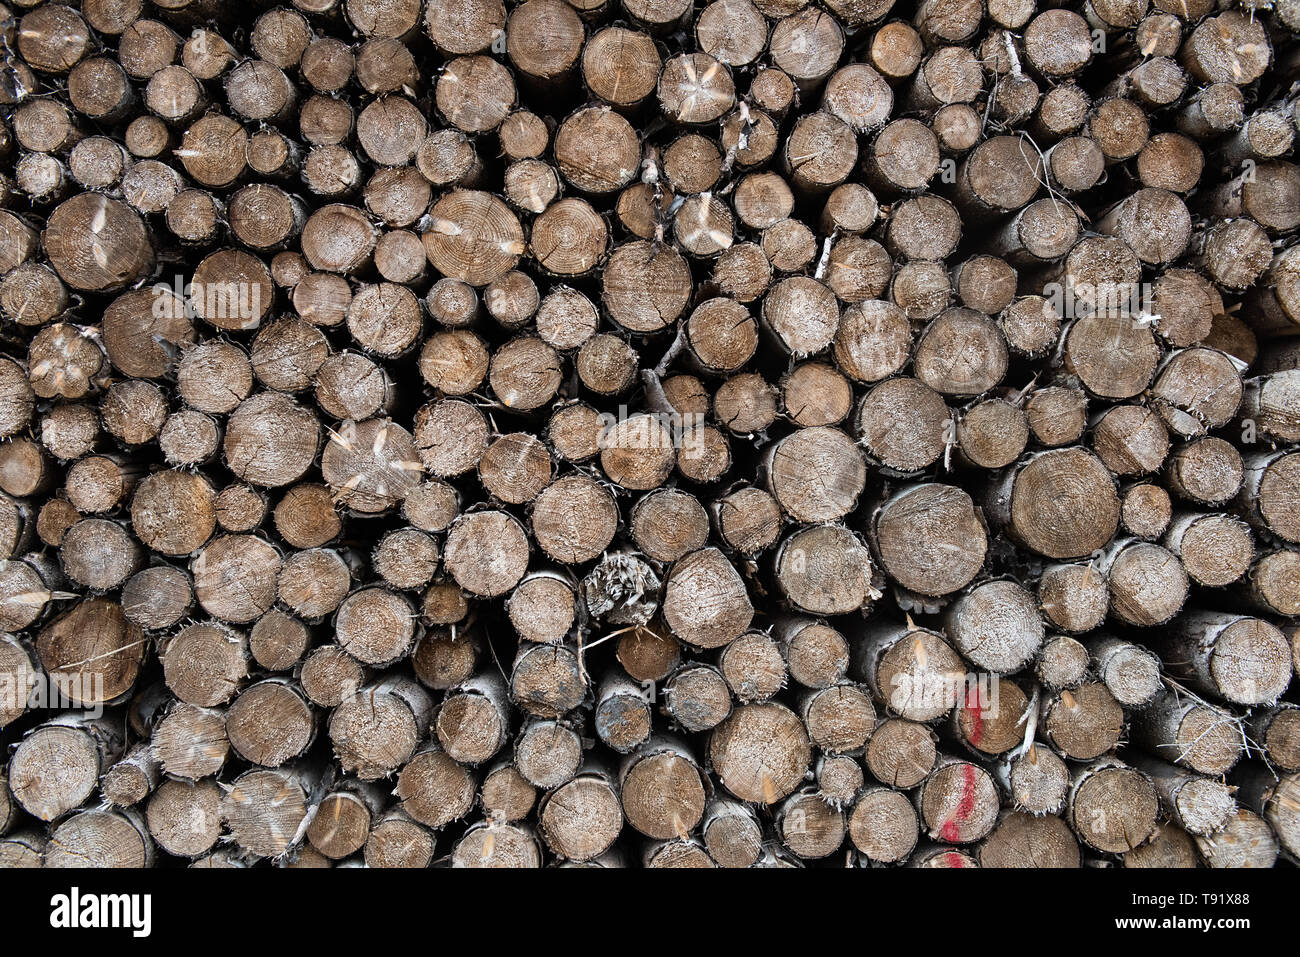 Sankt Ottilien, Germany. 16th May, 2019. Spruce logs are lined up along the edge of a forest area in the Söhrewald that has been severely affected by the windthrow. After the drought of 2018, trees are weakened and susceptible to bark beetle infestation. Credit: Swen Pförtner/dpa/Alamy Live News - Stock Image